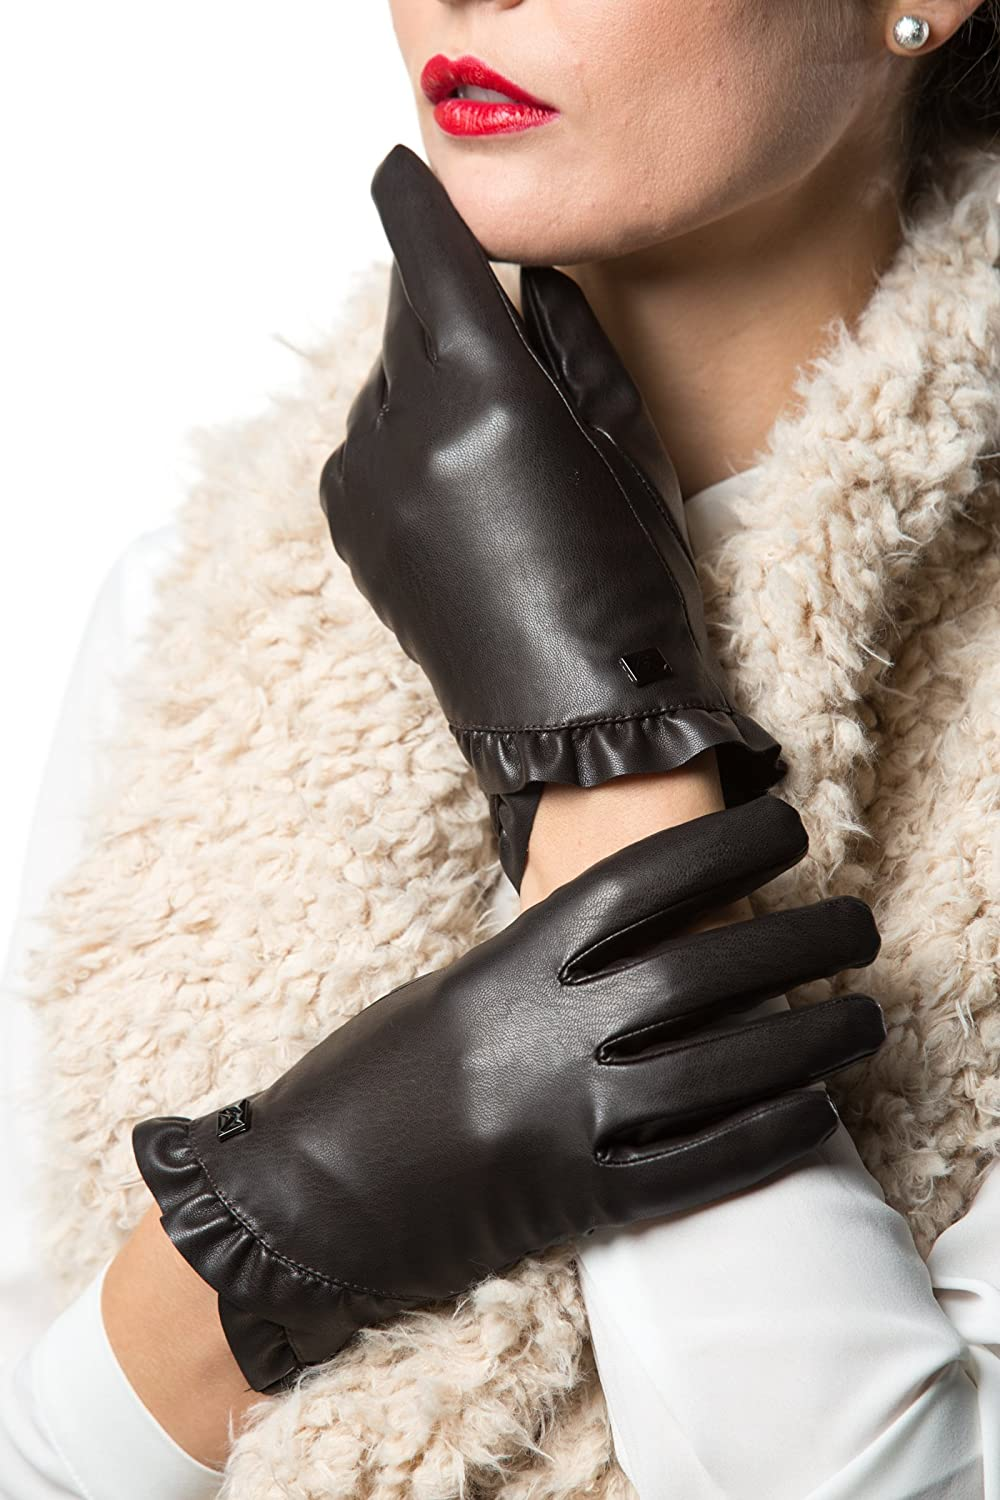 GALLERY SEVEN Max 40% OFF Women's Winter Gloves Free shipping on posting reviews Warm Tex Driving Touchscreen